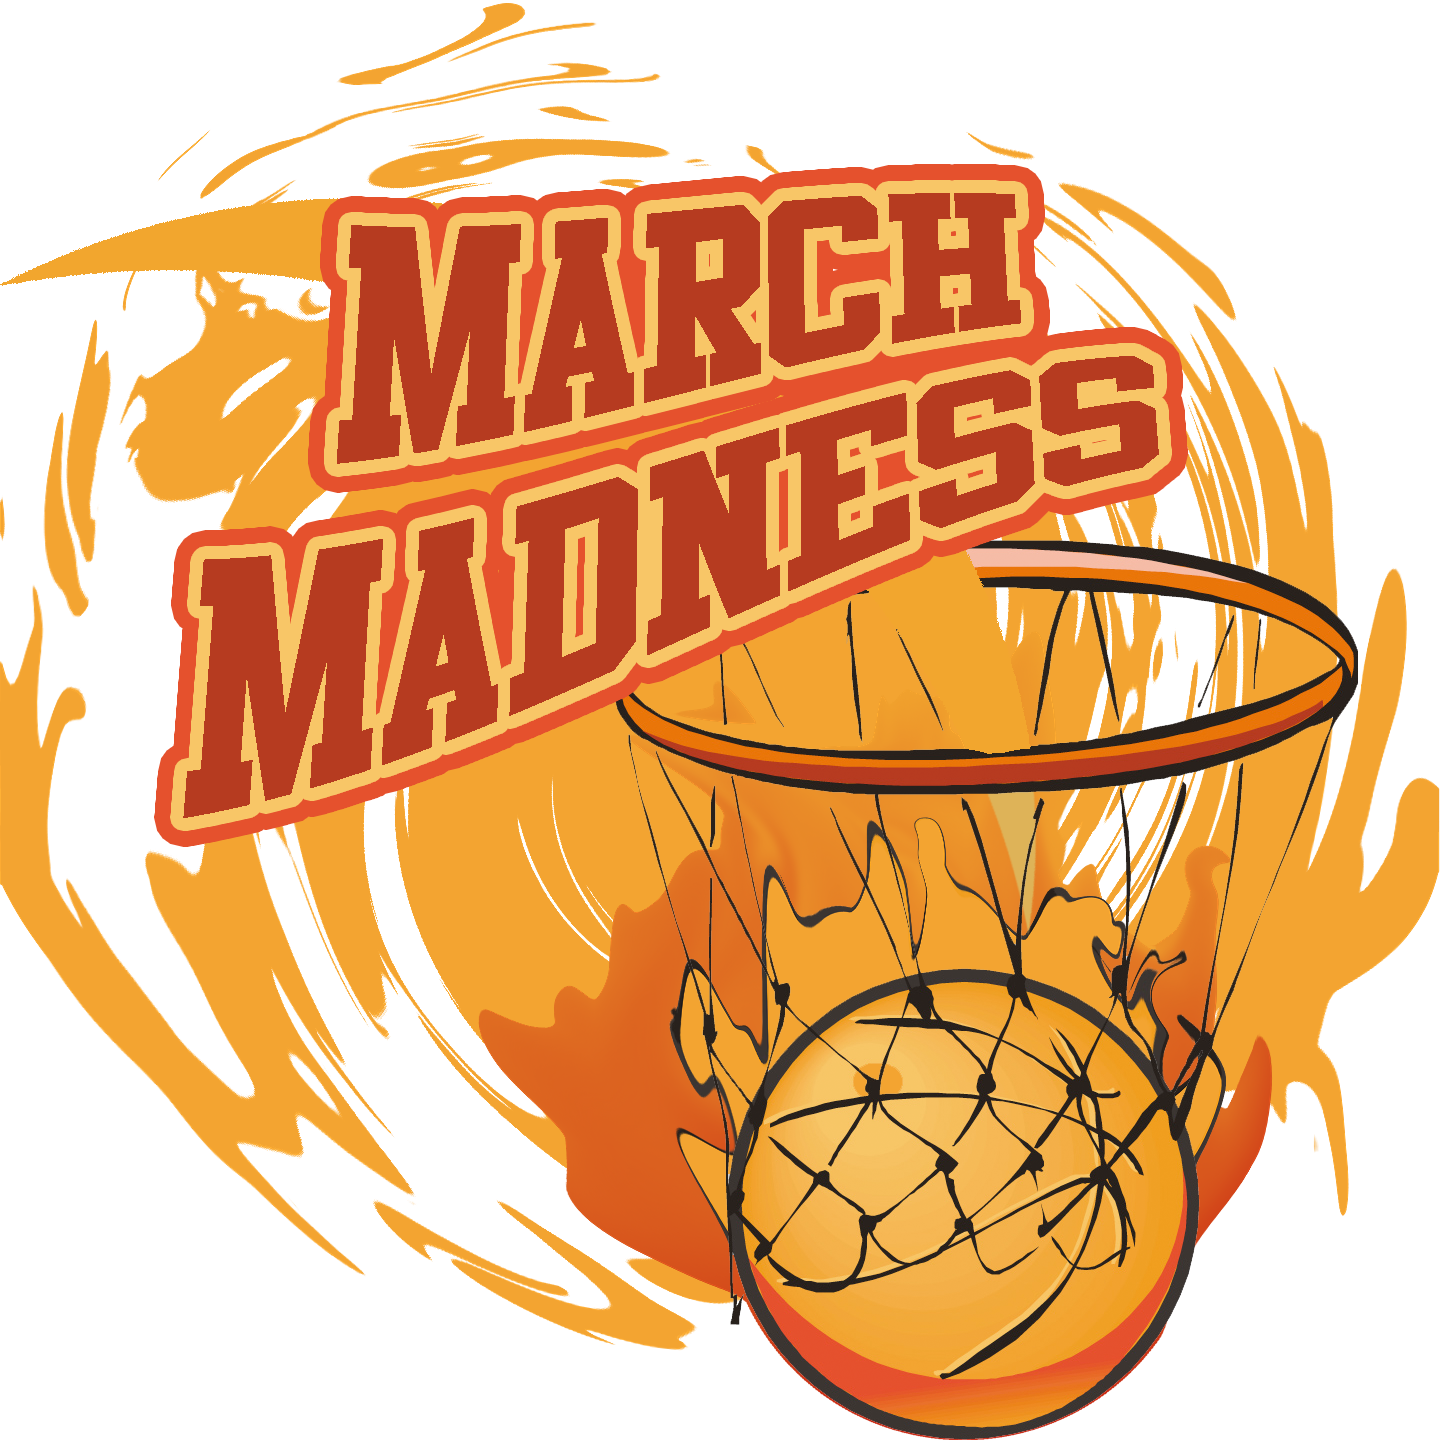 Ncaa March Madness Clipart. March Madnes-Ncaa March Madness Clipart. March Madness Logos Hd ..-4